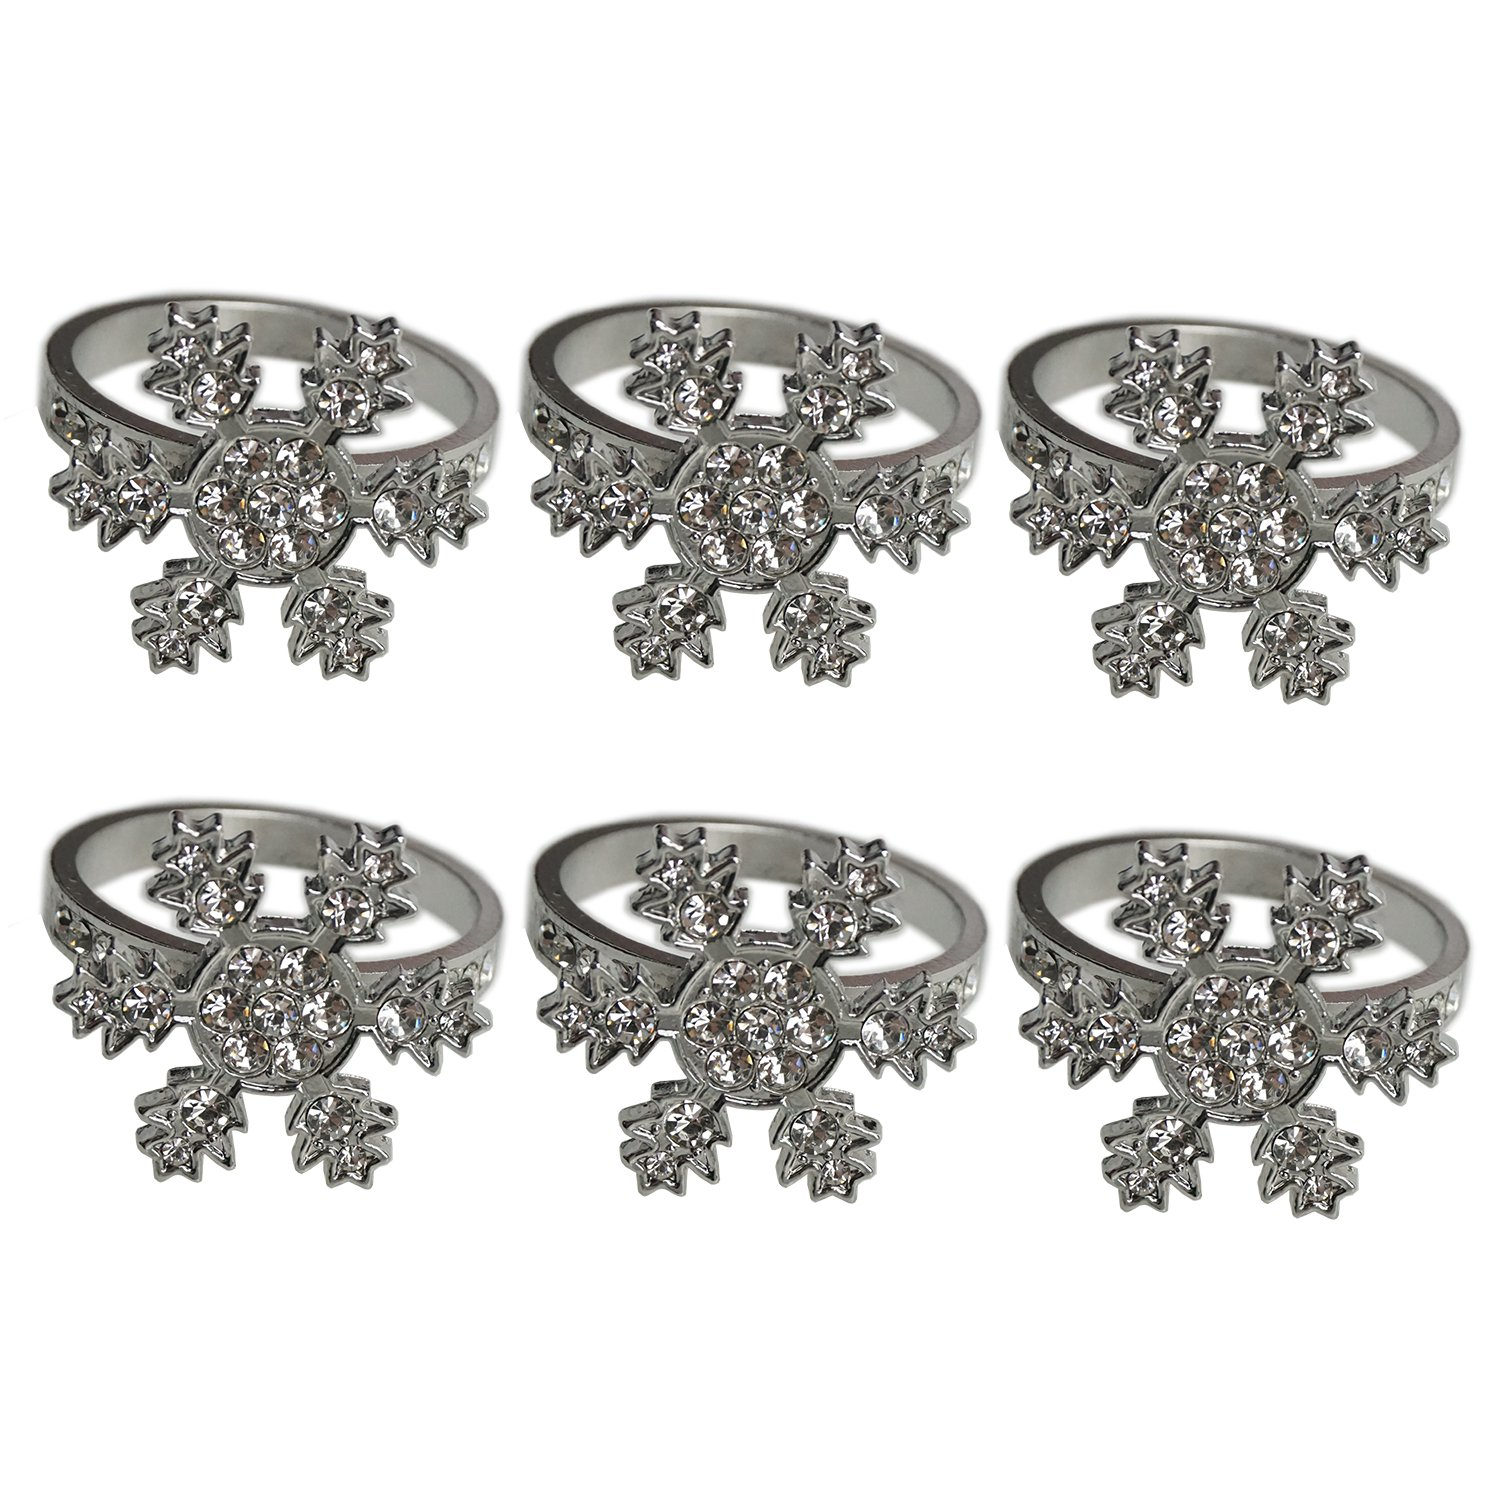 6 Counts Rhinestone Snowflake Napkin Rings Frozen Silver Ring Napkin Holder for Christmas Party Decoration by SHXSTORE